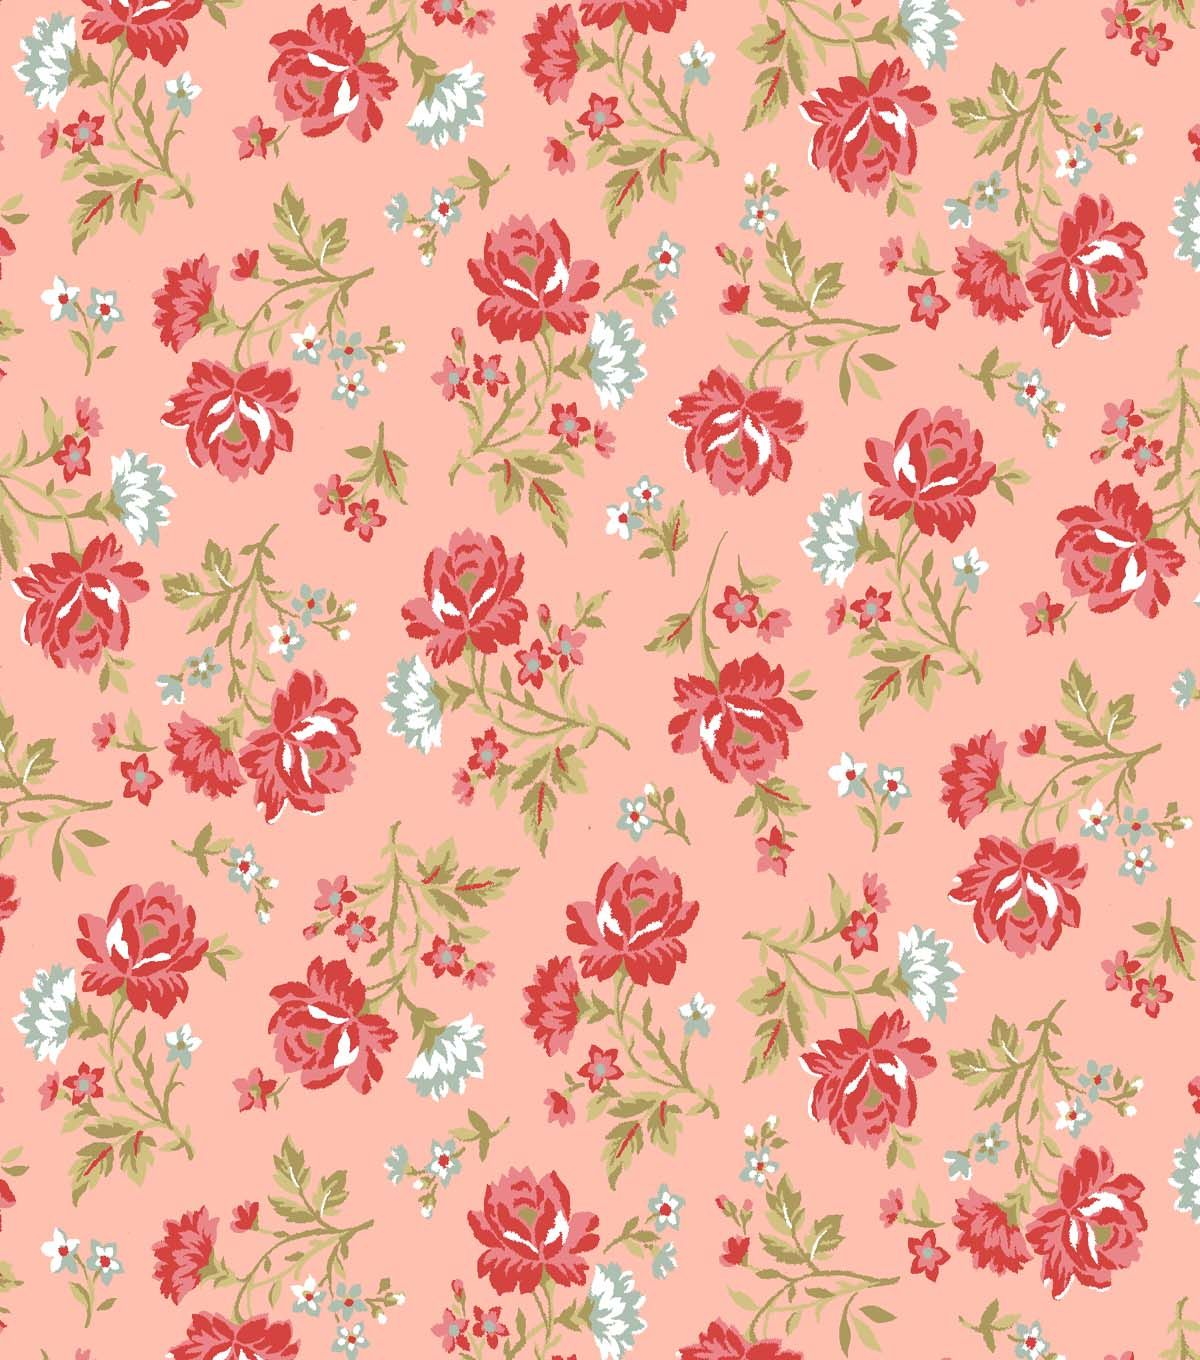 Keepsake Calico Fabric Rose Bouquet Red & PinkKeepsake Calico Fabric ...